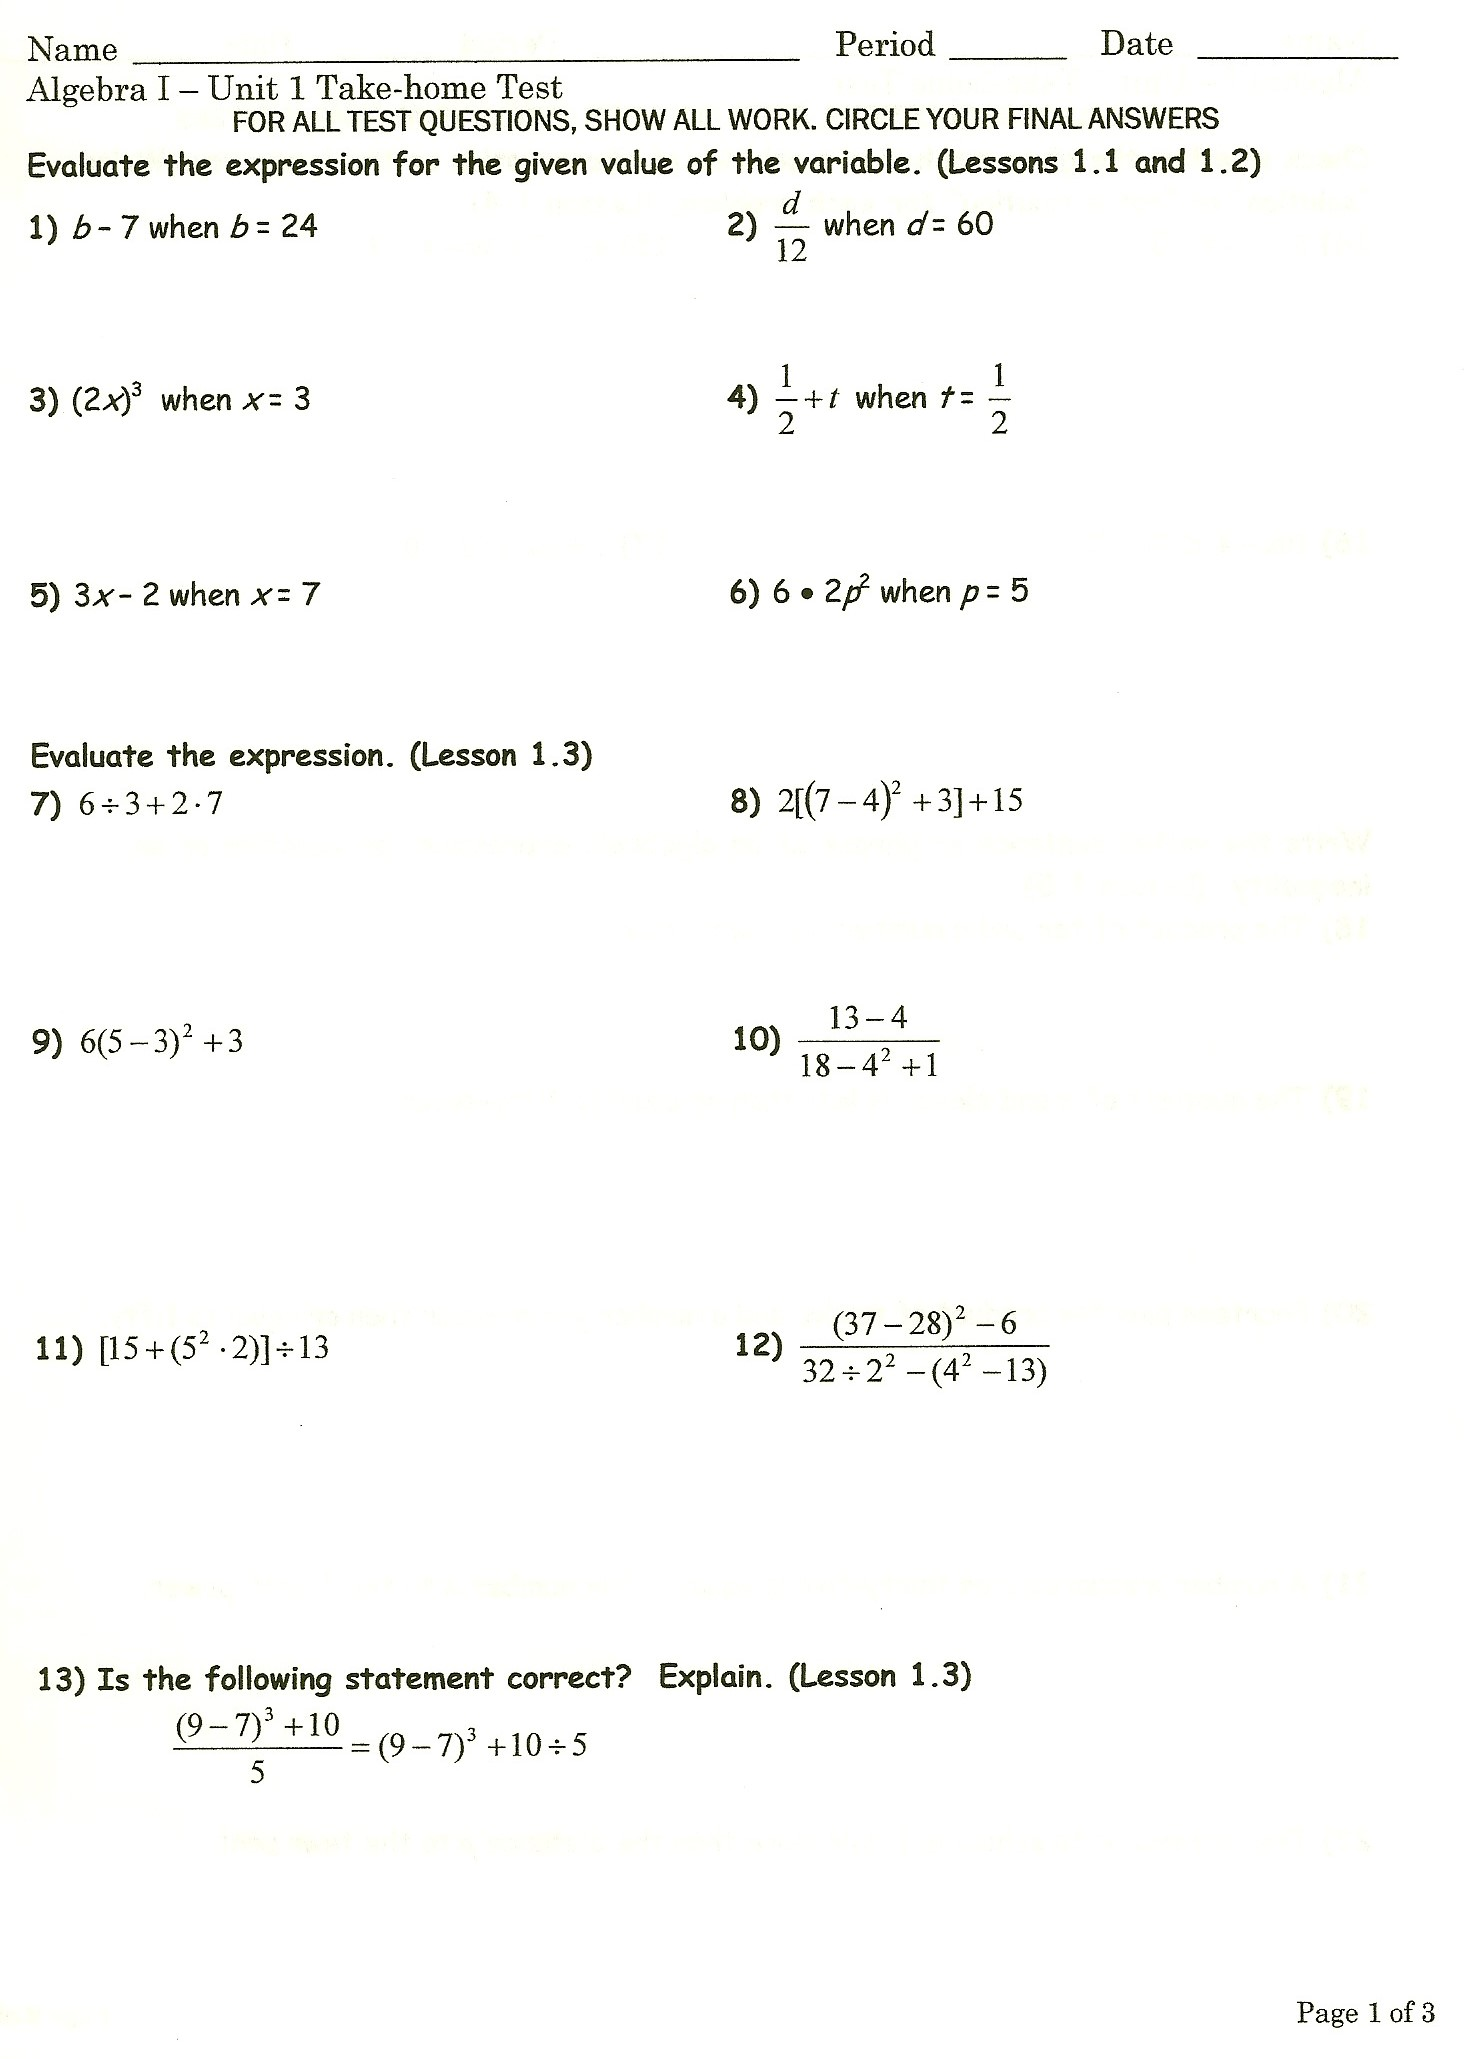 algebra 1 ms kulcsar s website file